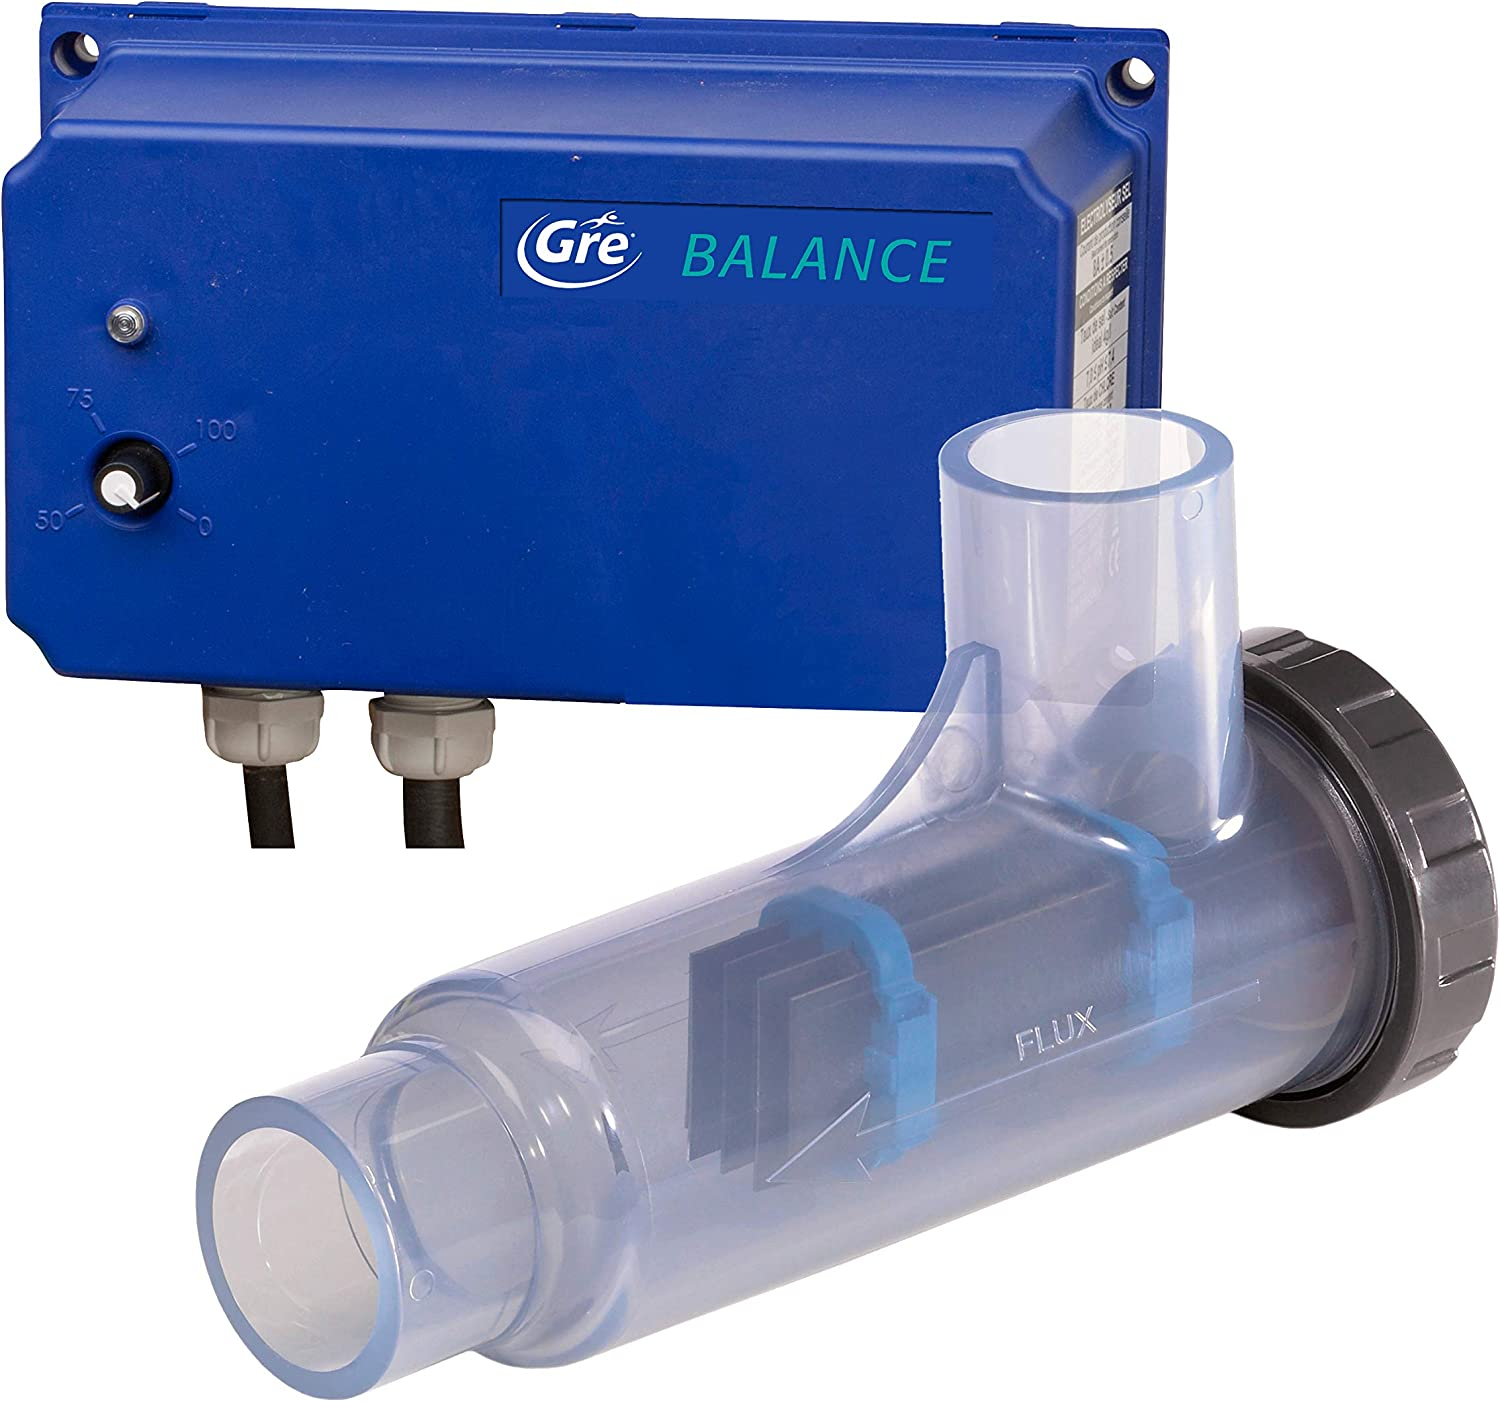 GRE eesb55 – Chlorinator for Ground Pools and Ploughed Up to 55 M³ – Production of Chlorine 13 – 15 G/H